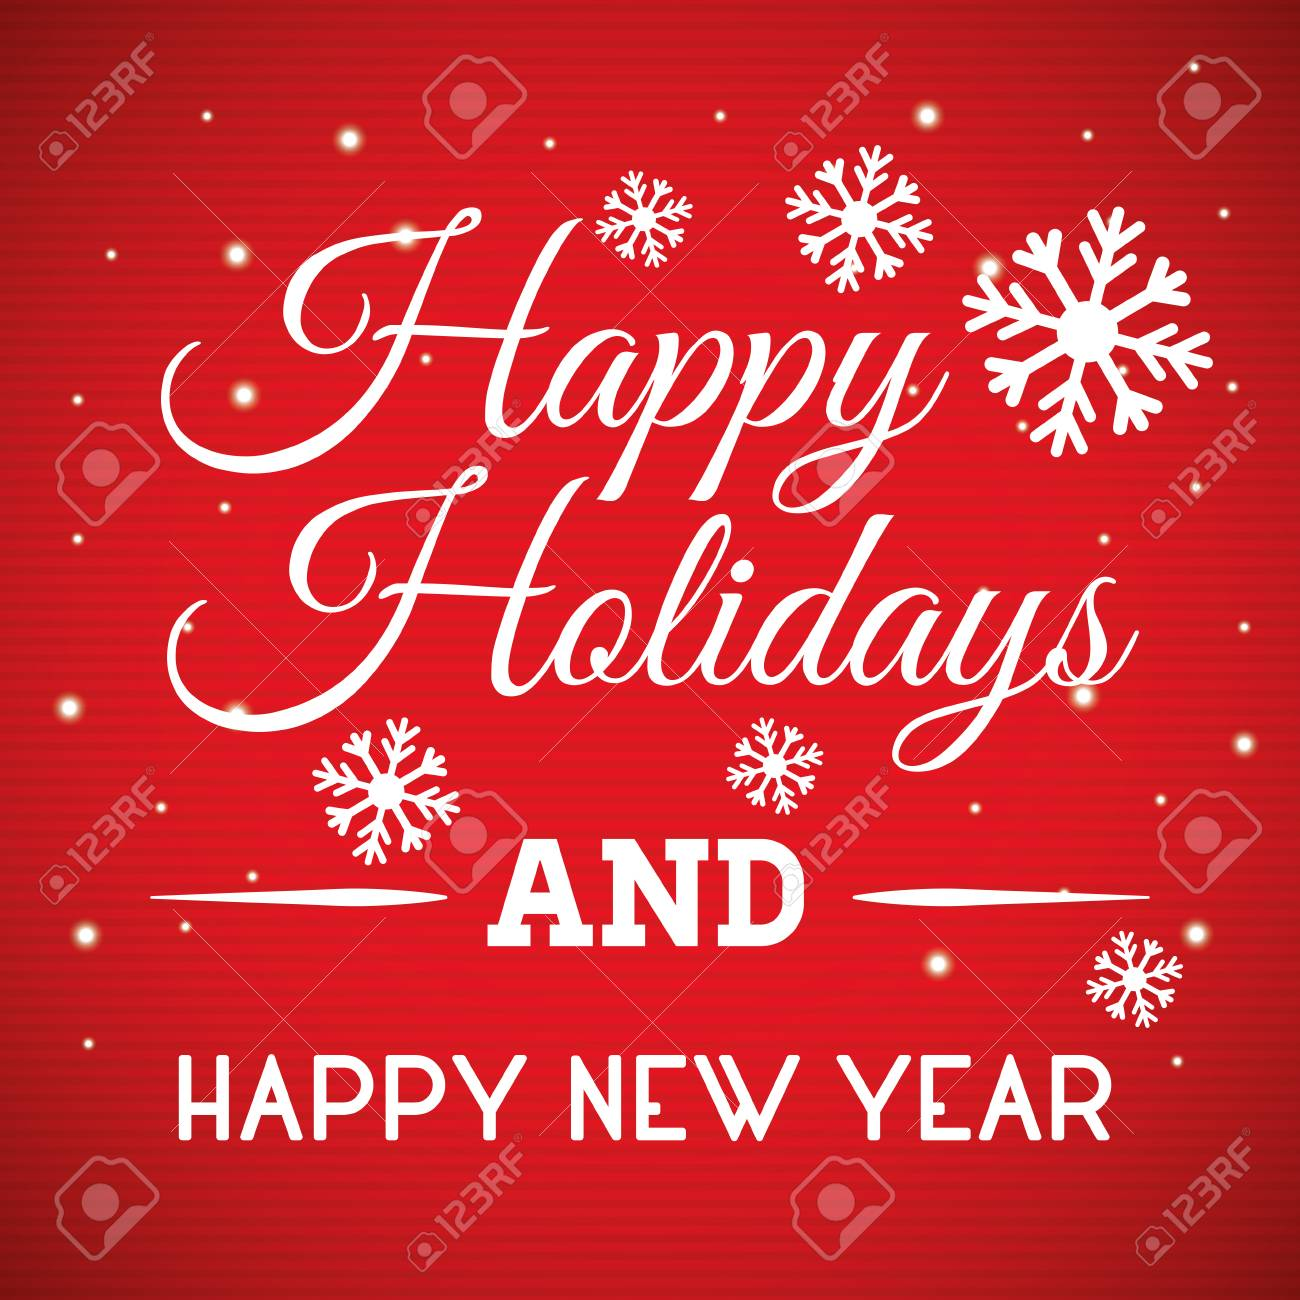 Happy holidays and merry christmas card design, vector illustration. - 47275663